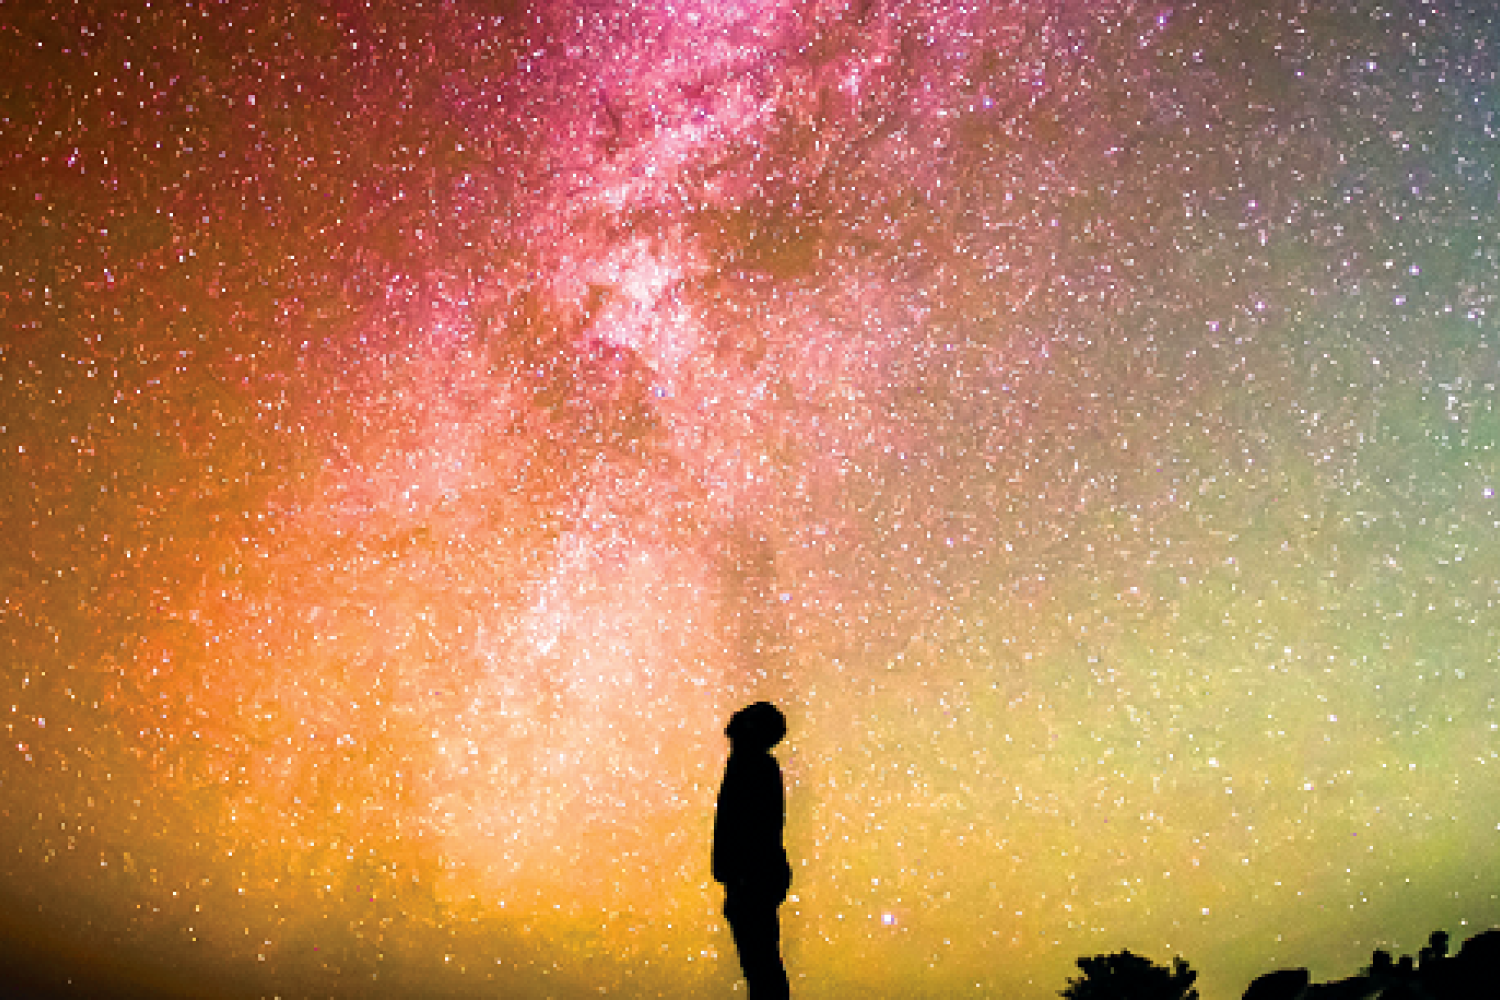 Alone So Far Image with person looking into the stars